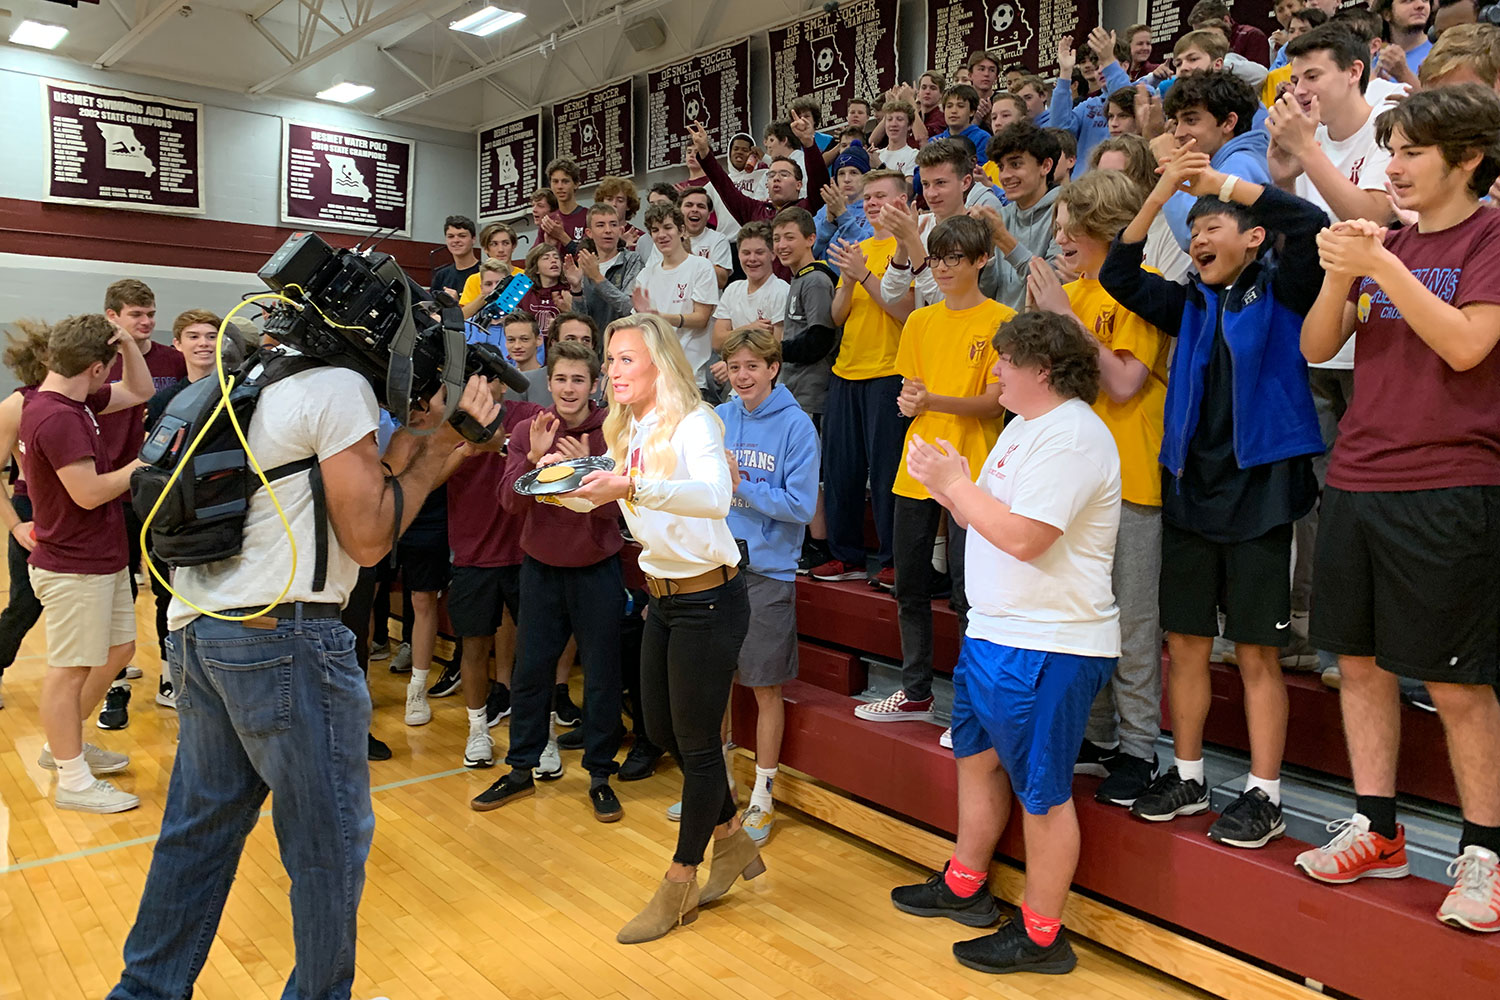 A crowd of students gathers around Fox 2 reporter Katherine Hessel during a live shot Friday morning as part of the Pep Zone. The program featured De Smet in their Friday football coverage.